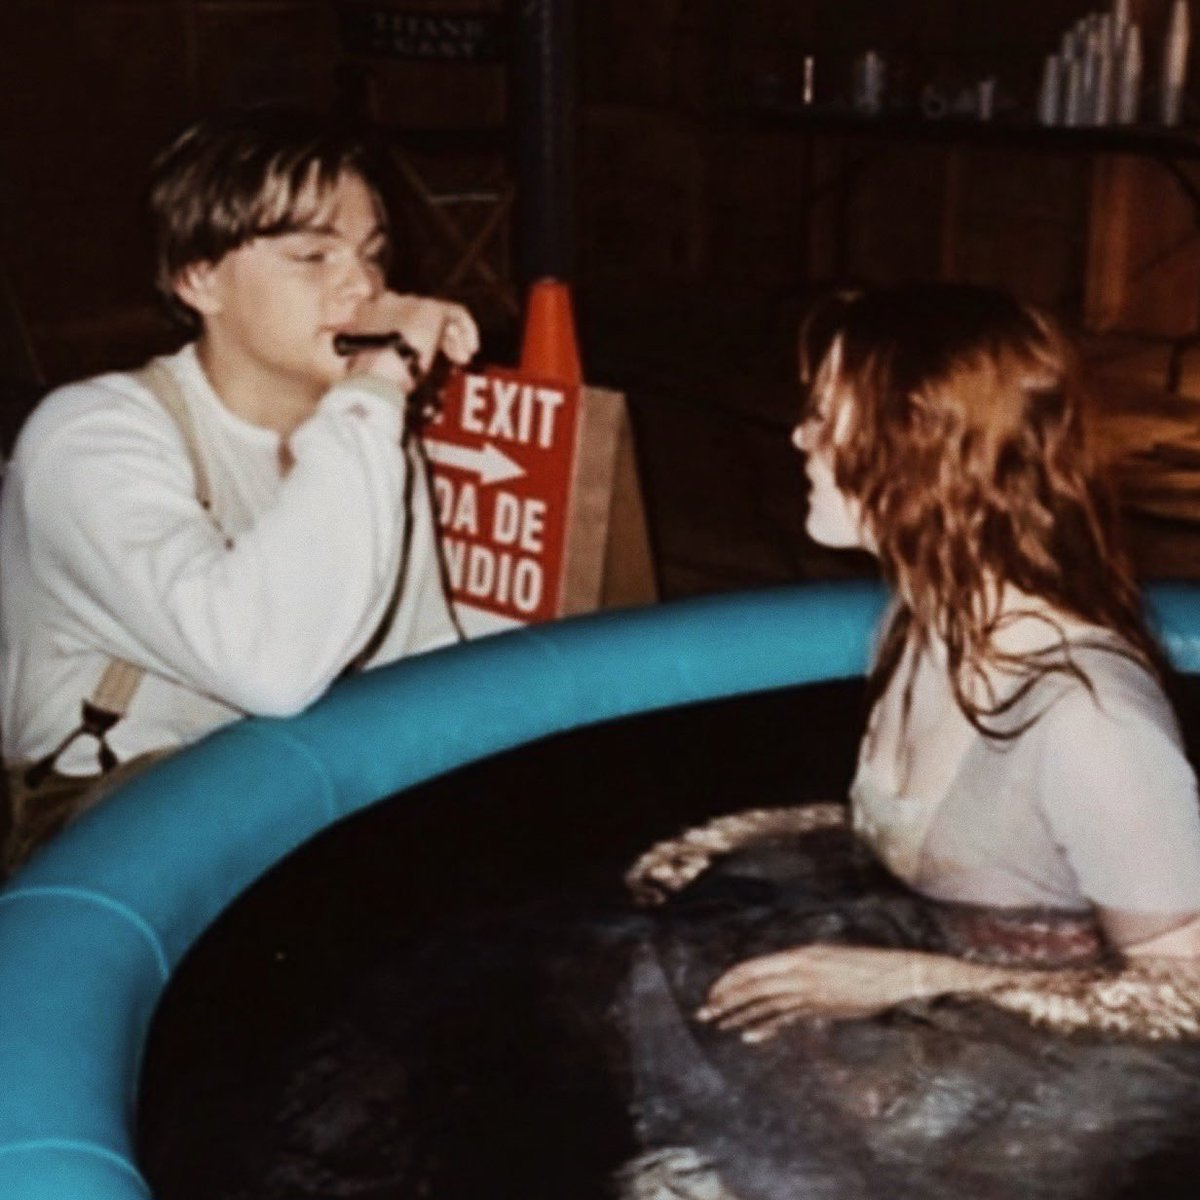 Best Of Leo Dicaprio On Twitter Leonardo Dicaprio And Kate Winslet On The Set Of Titanic 1997